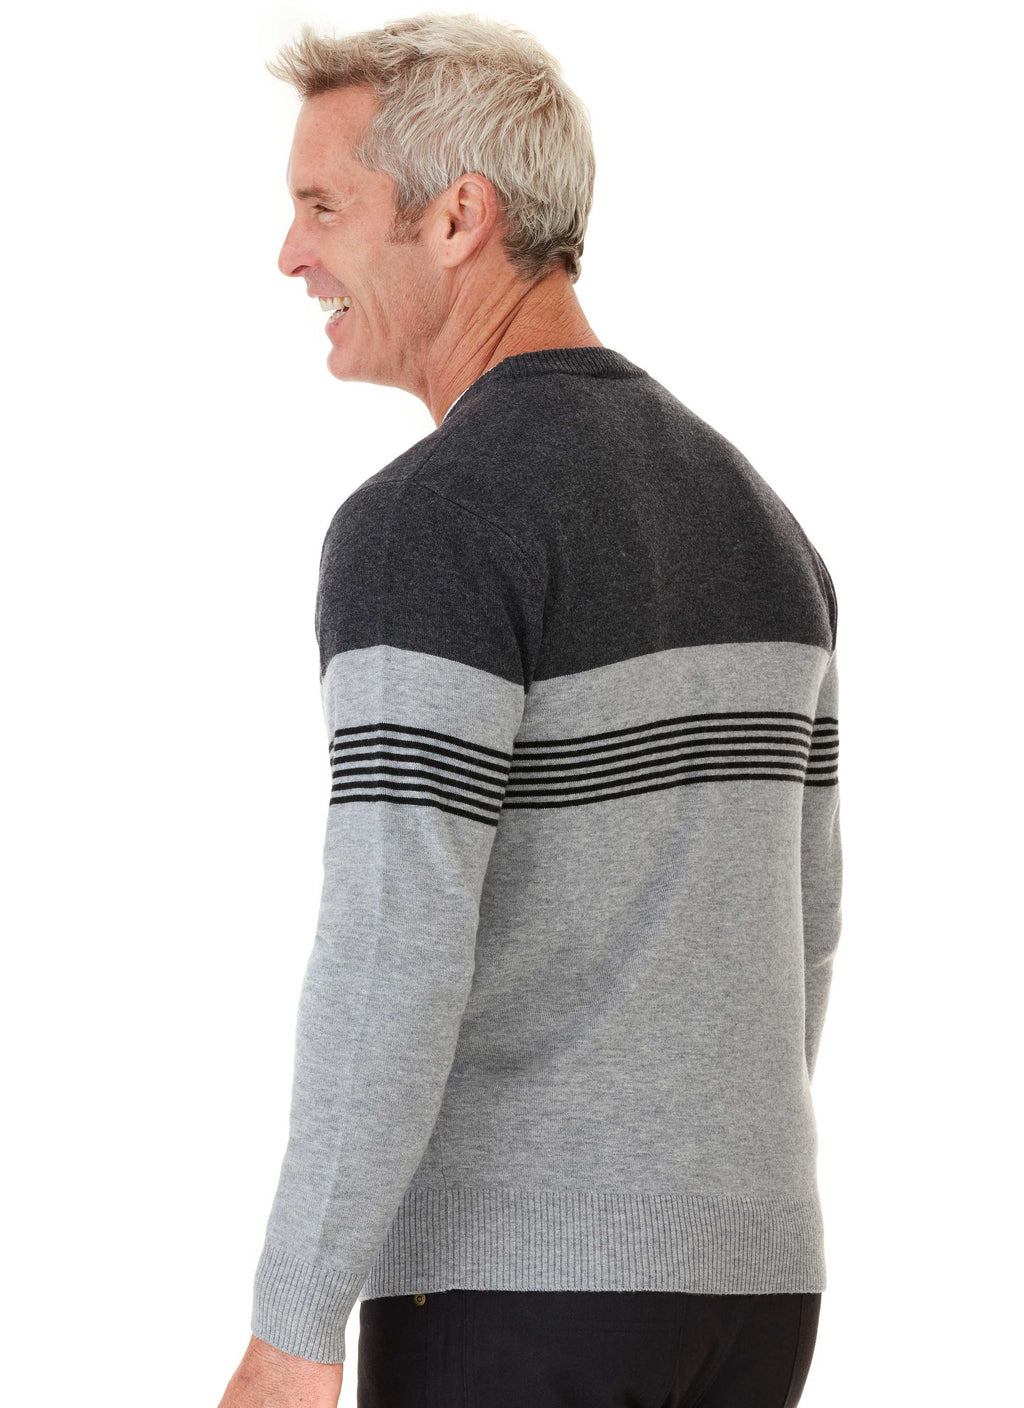 BIRRALEE CREW NECK WITH STRIPE DETAIL